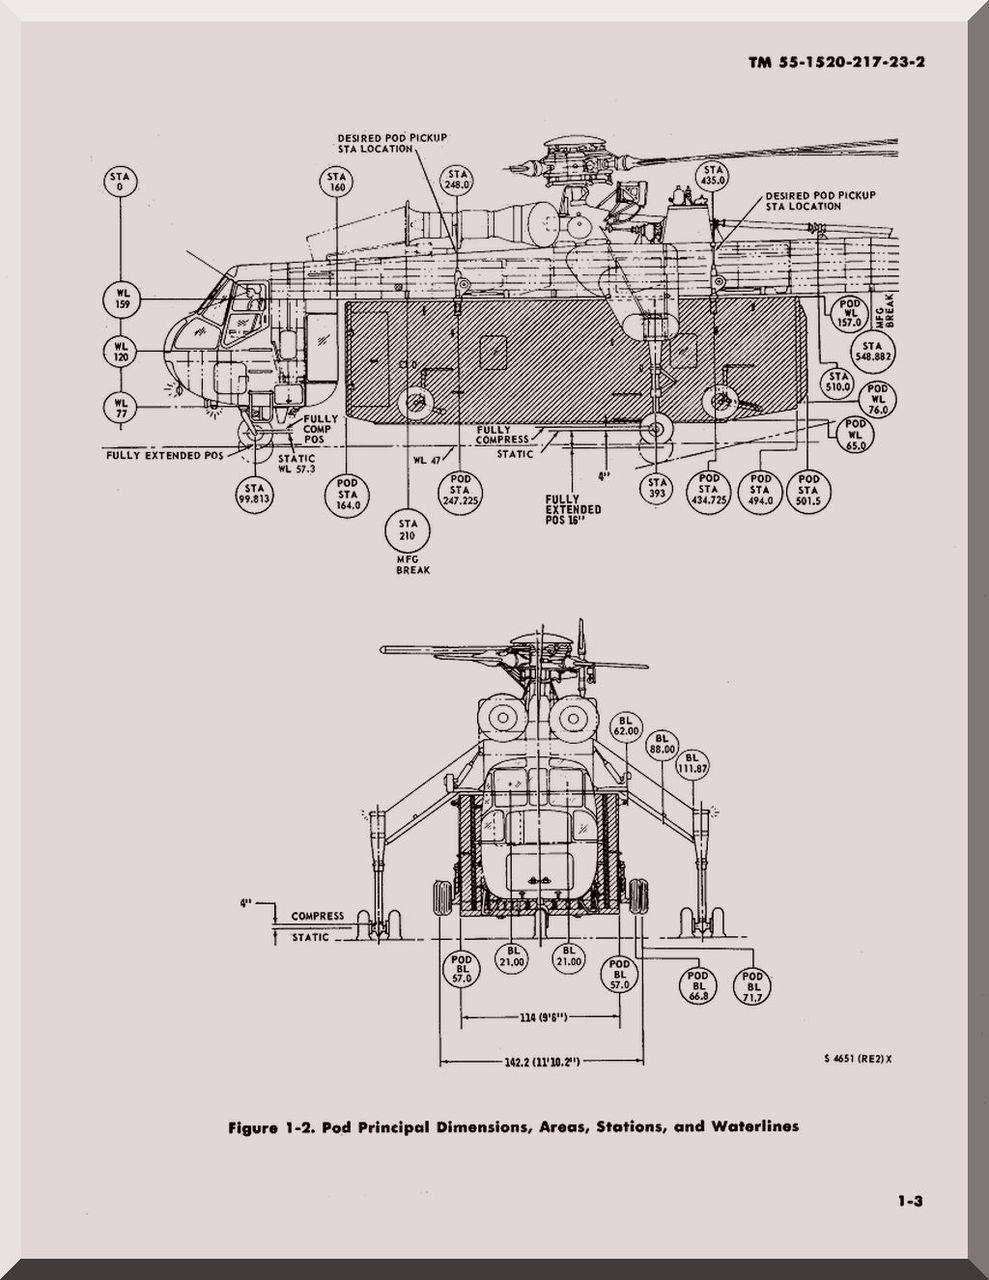 Sikorsky S-64 CH-54 A B Helicopter Maintenance Manual 55